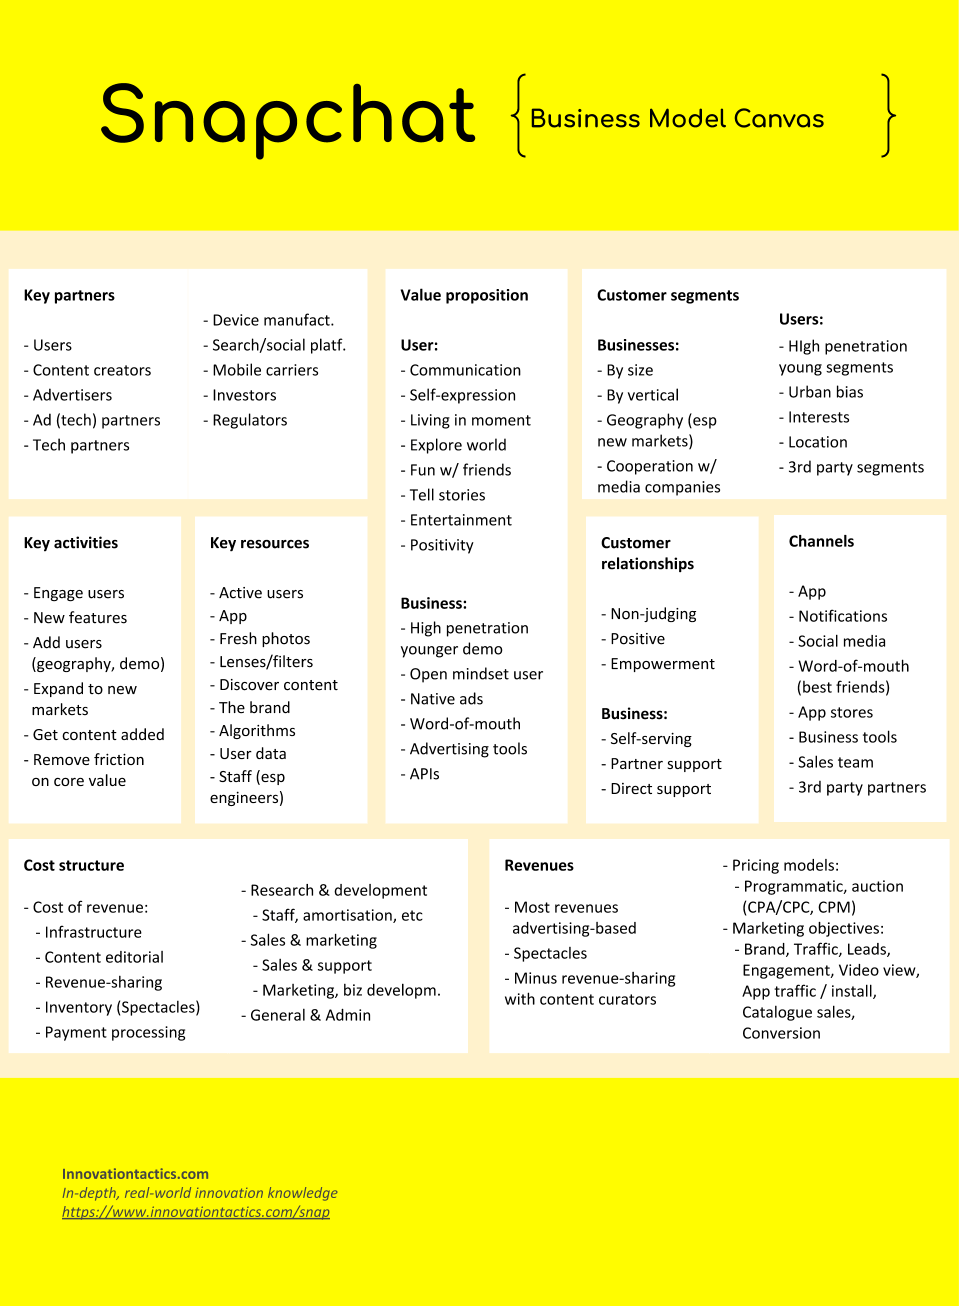 Snap Inc's business model canvas ... but there is much more to learn (click image if you want to know more)